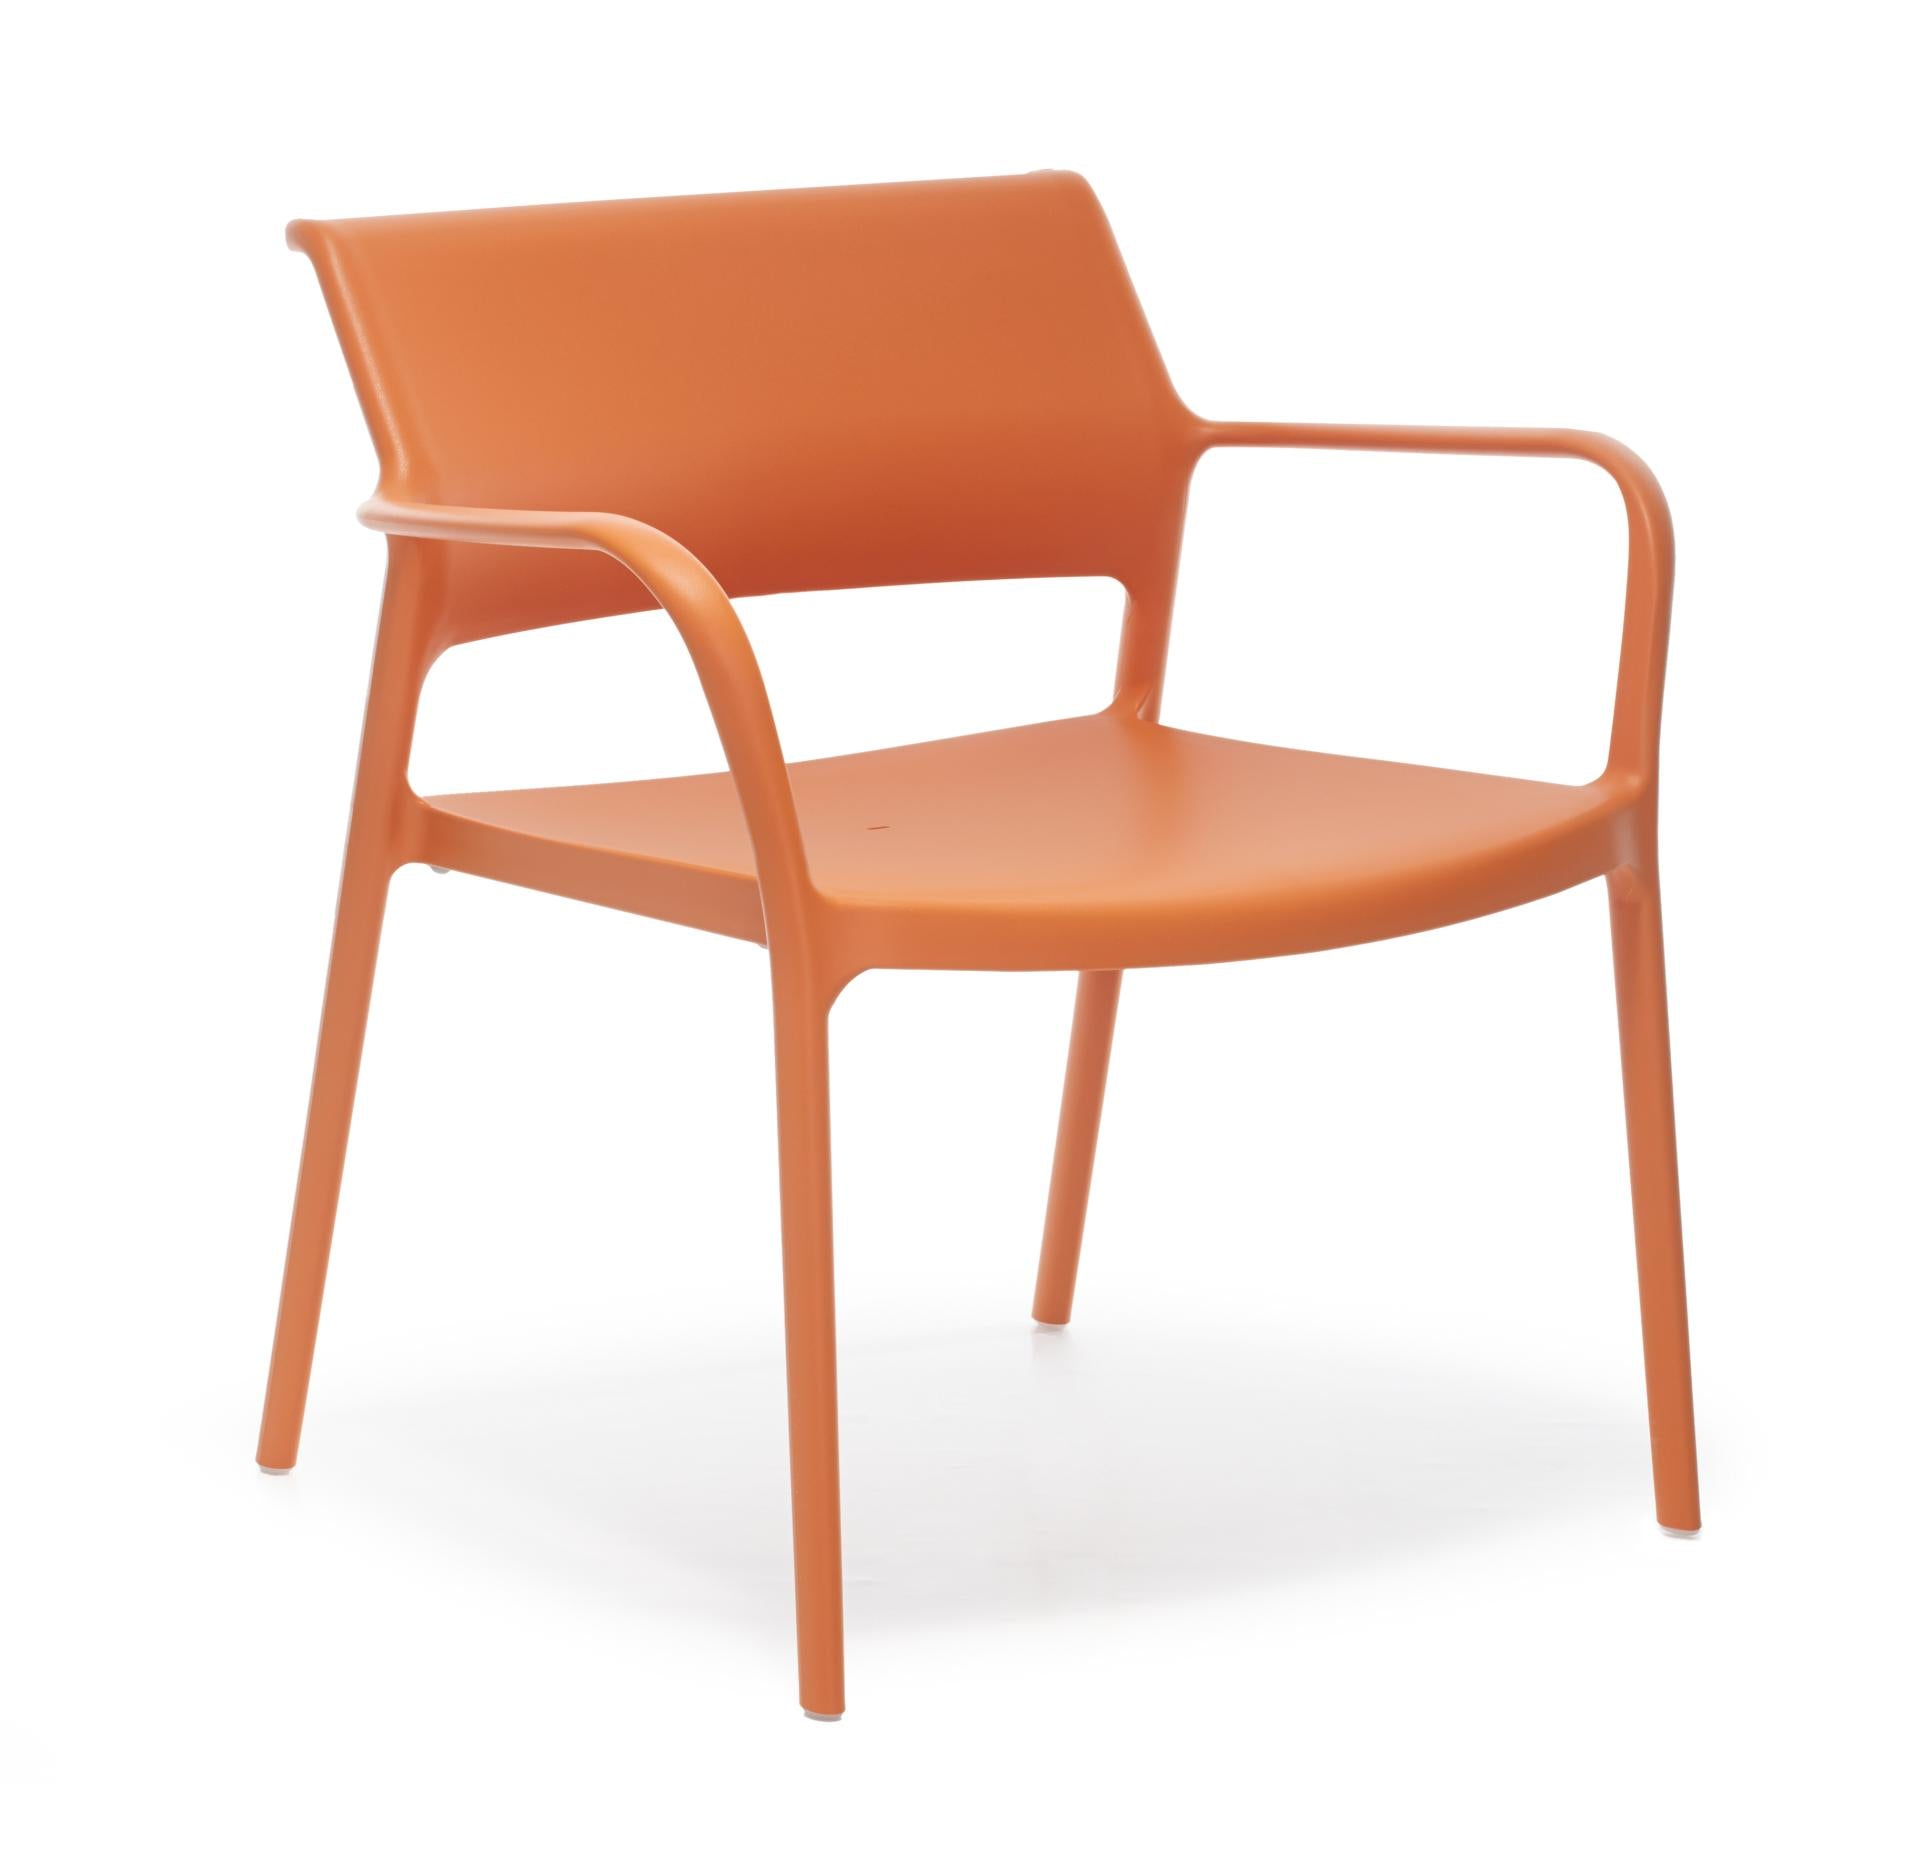 Terrific Ara Polypropylene Outdoor Lounge Chair From Pedrali Tb Gmtry Best Dining Table And Chair Ideas Images Gmtryco